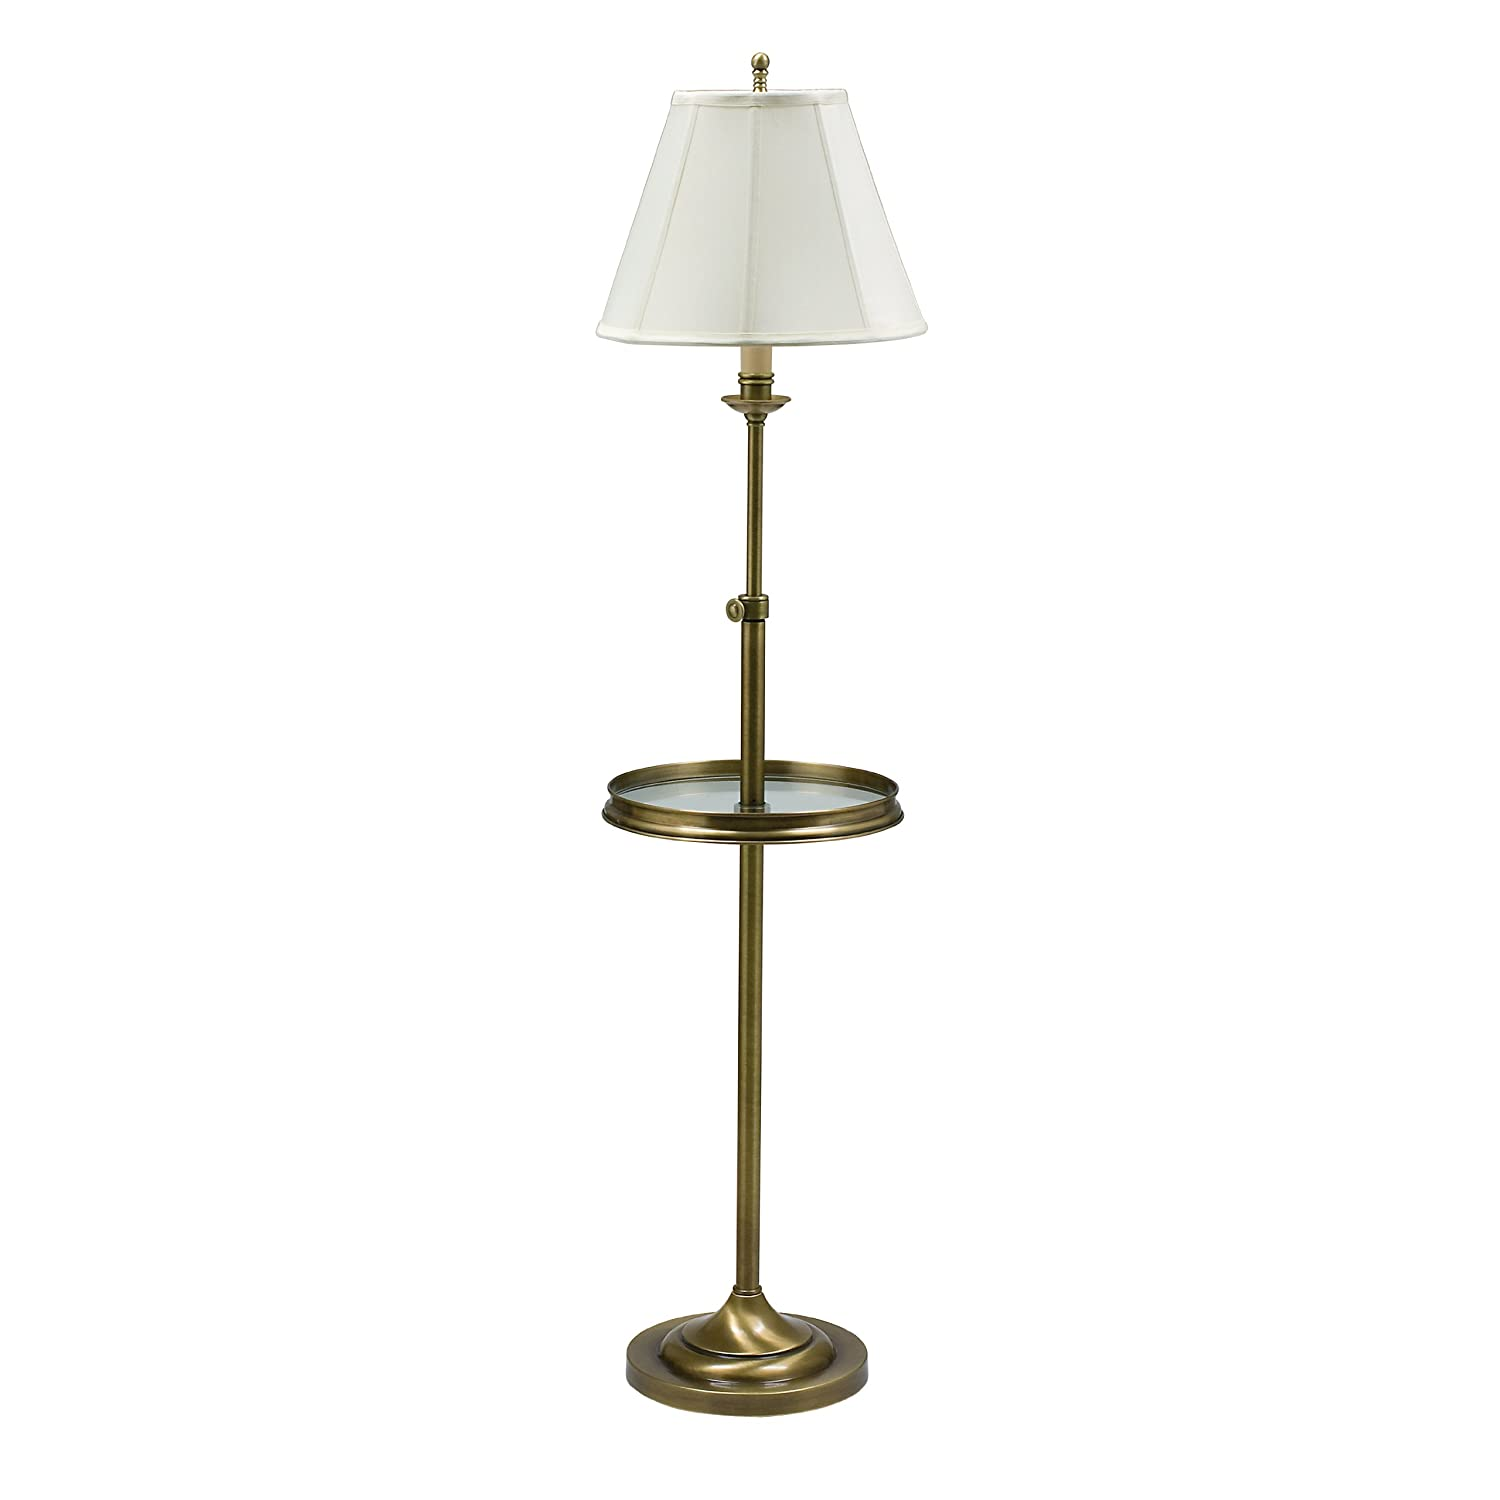 Brass Floor Lamp Amazon: Floor Lamp With Table Attached